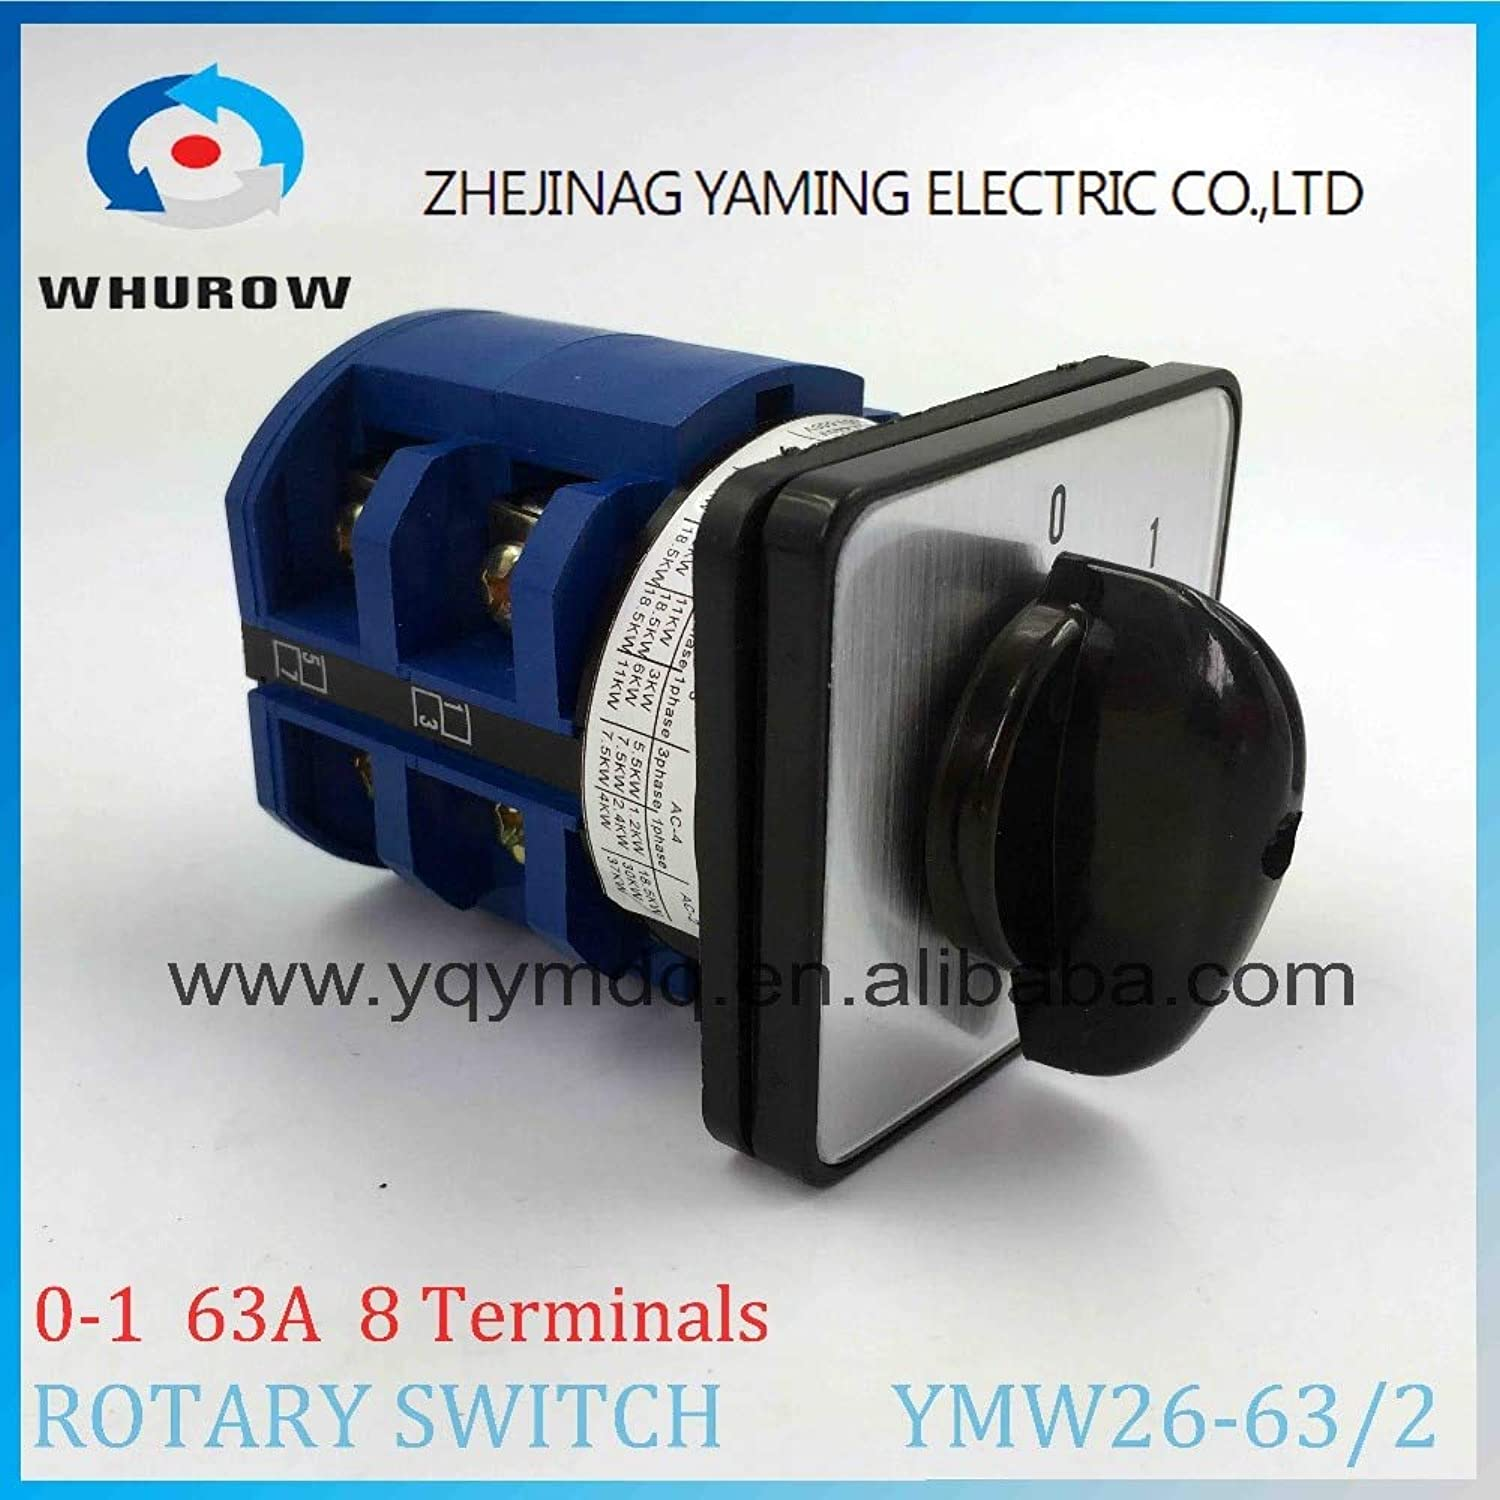 LW26 YMW2663 2 redary Switch 2 postion (01) Off ON 690V 63A 2 Pole 8 Terminal Screw Universal Changeover cam Main Switch